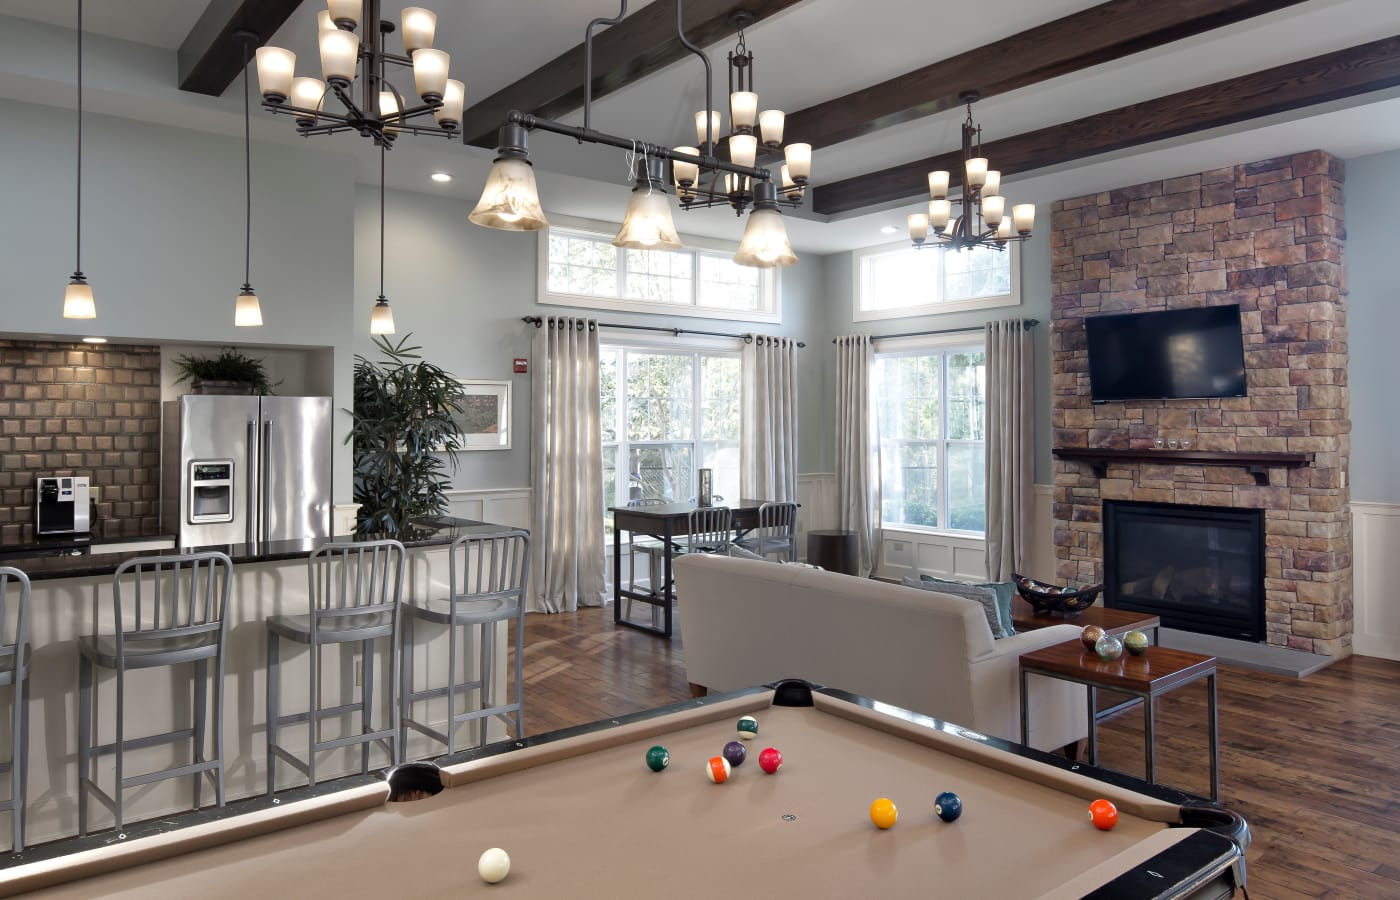 Billiards table and fireplace in the clubhouse at Prynne Hills in Canton, MA